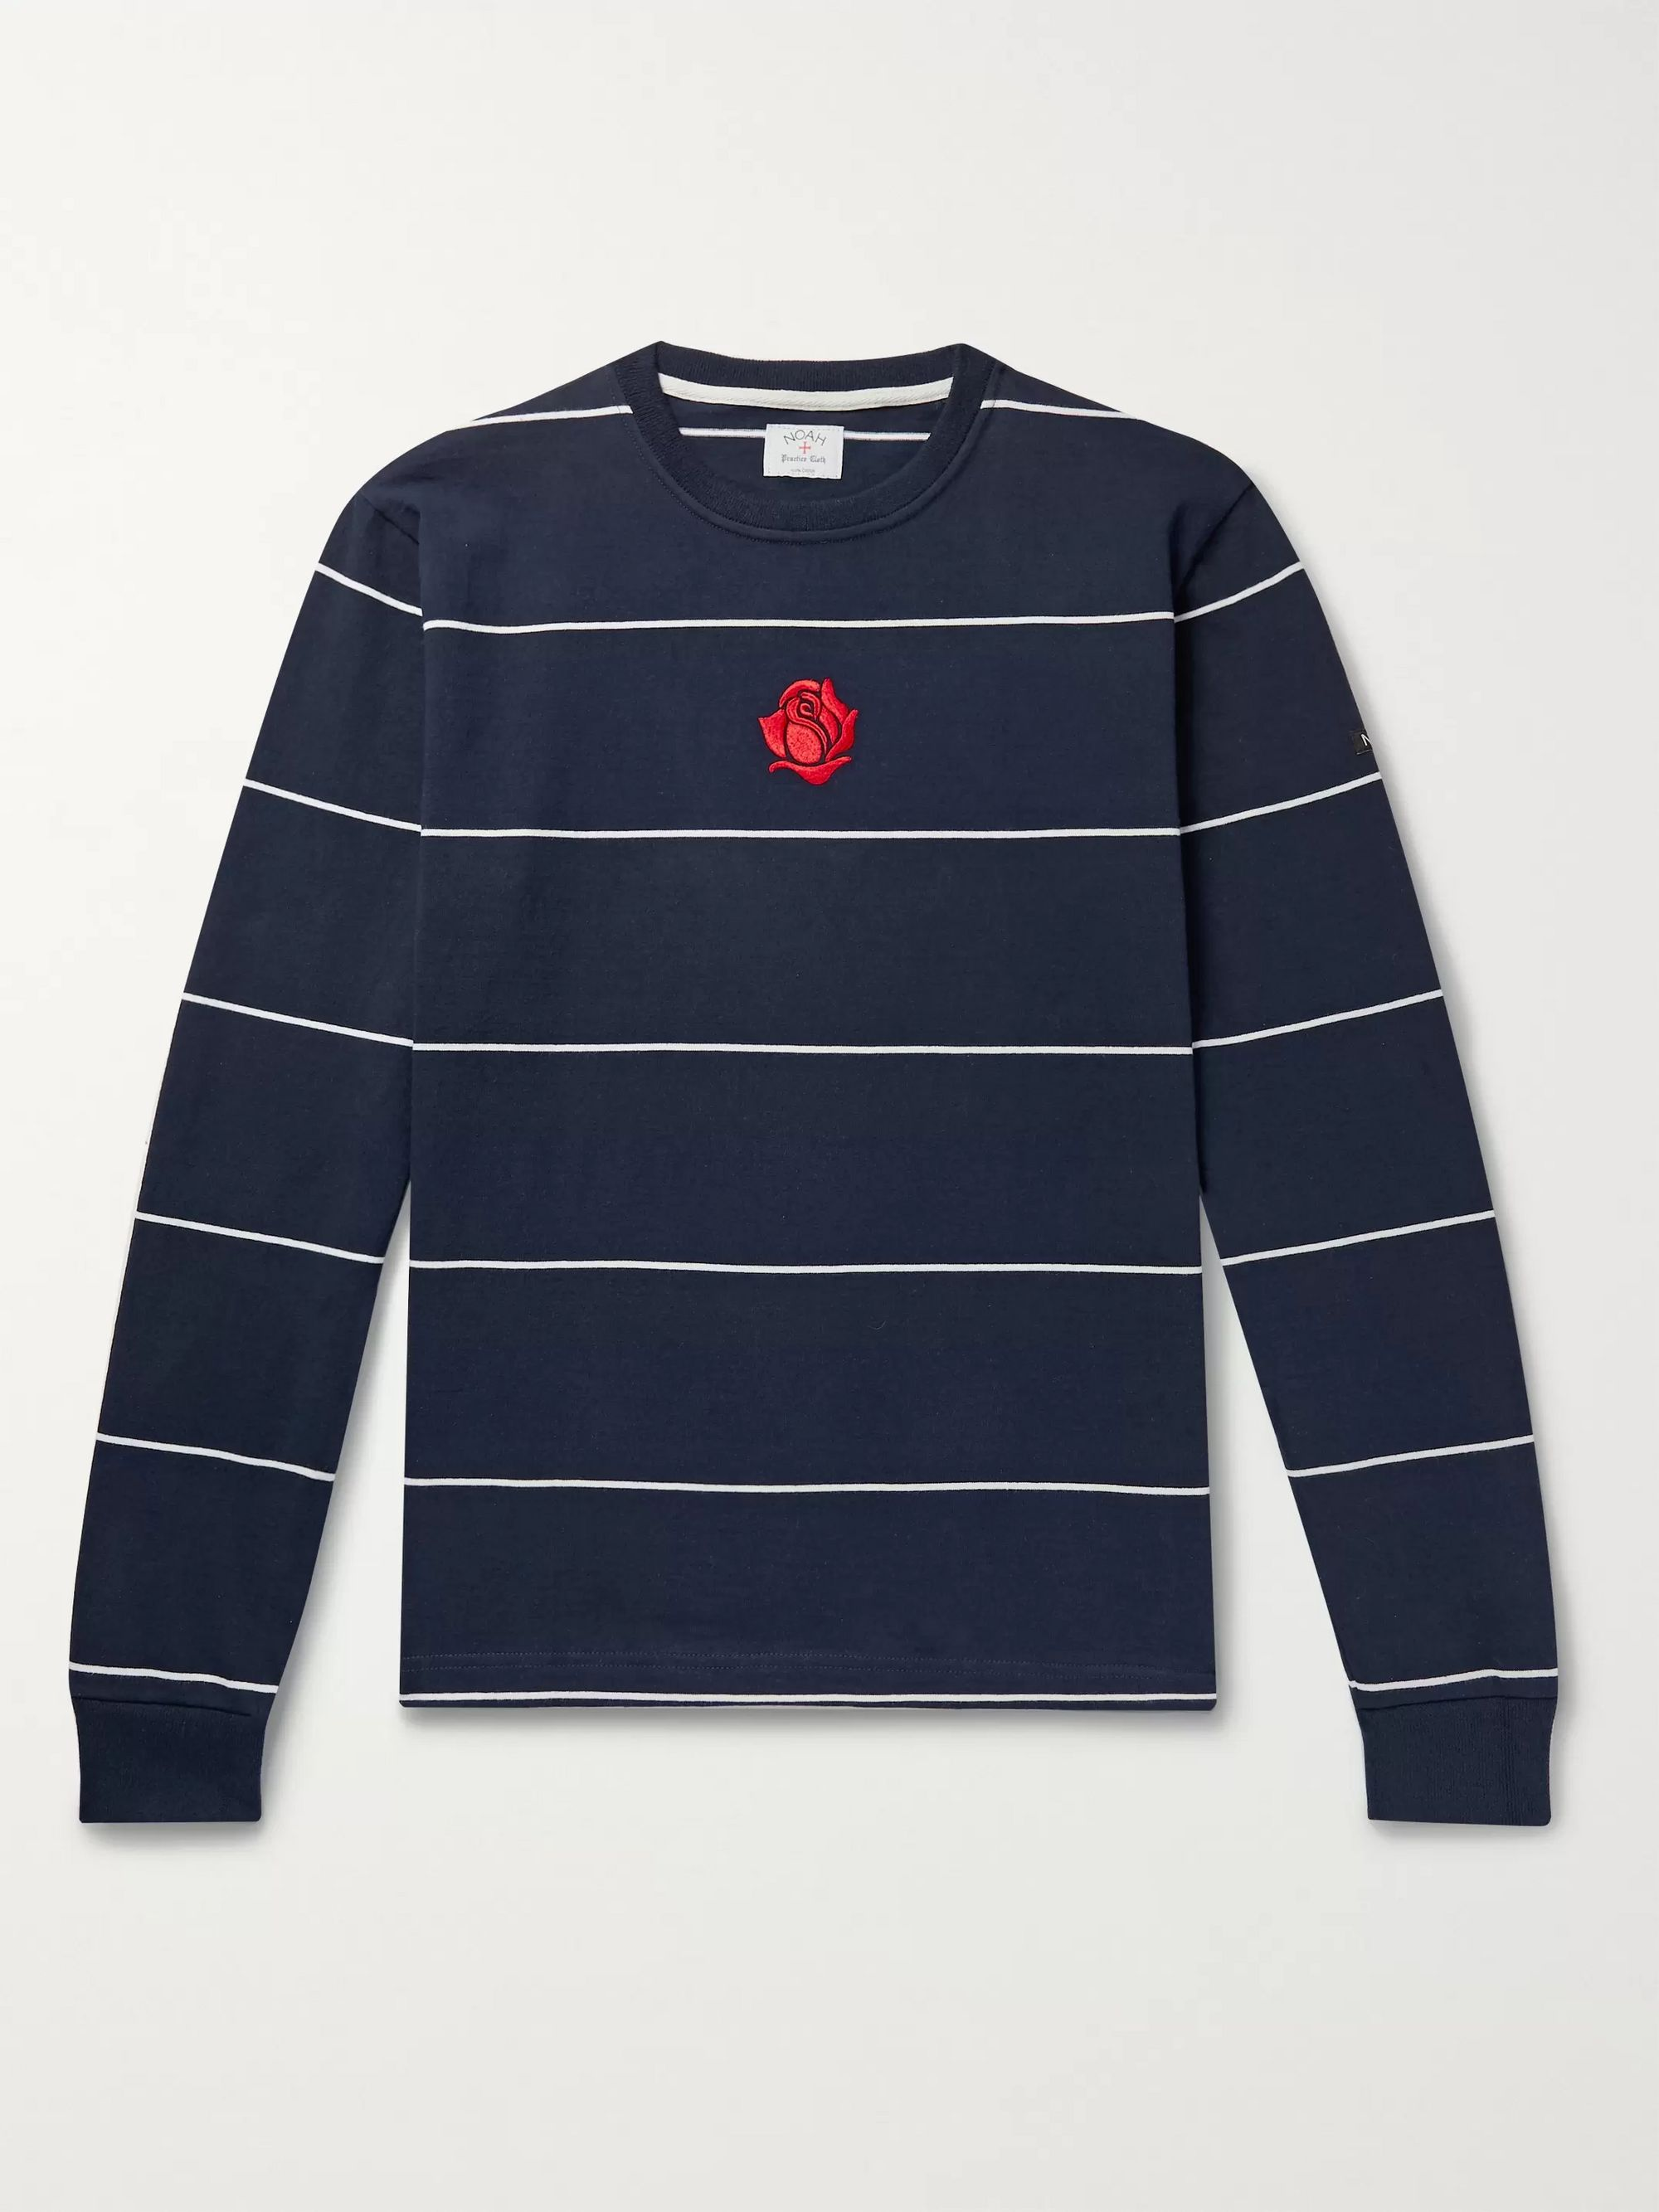 Logo Embroidered Striped Cotton Jersey T Shirt by Mr Porter